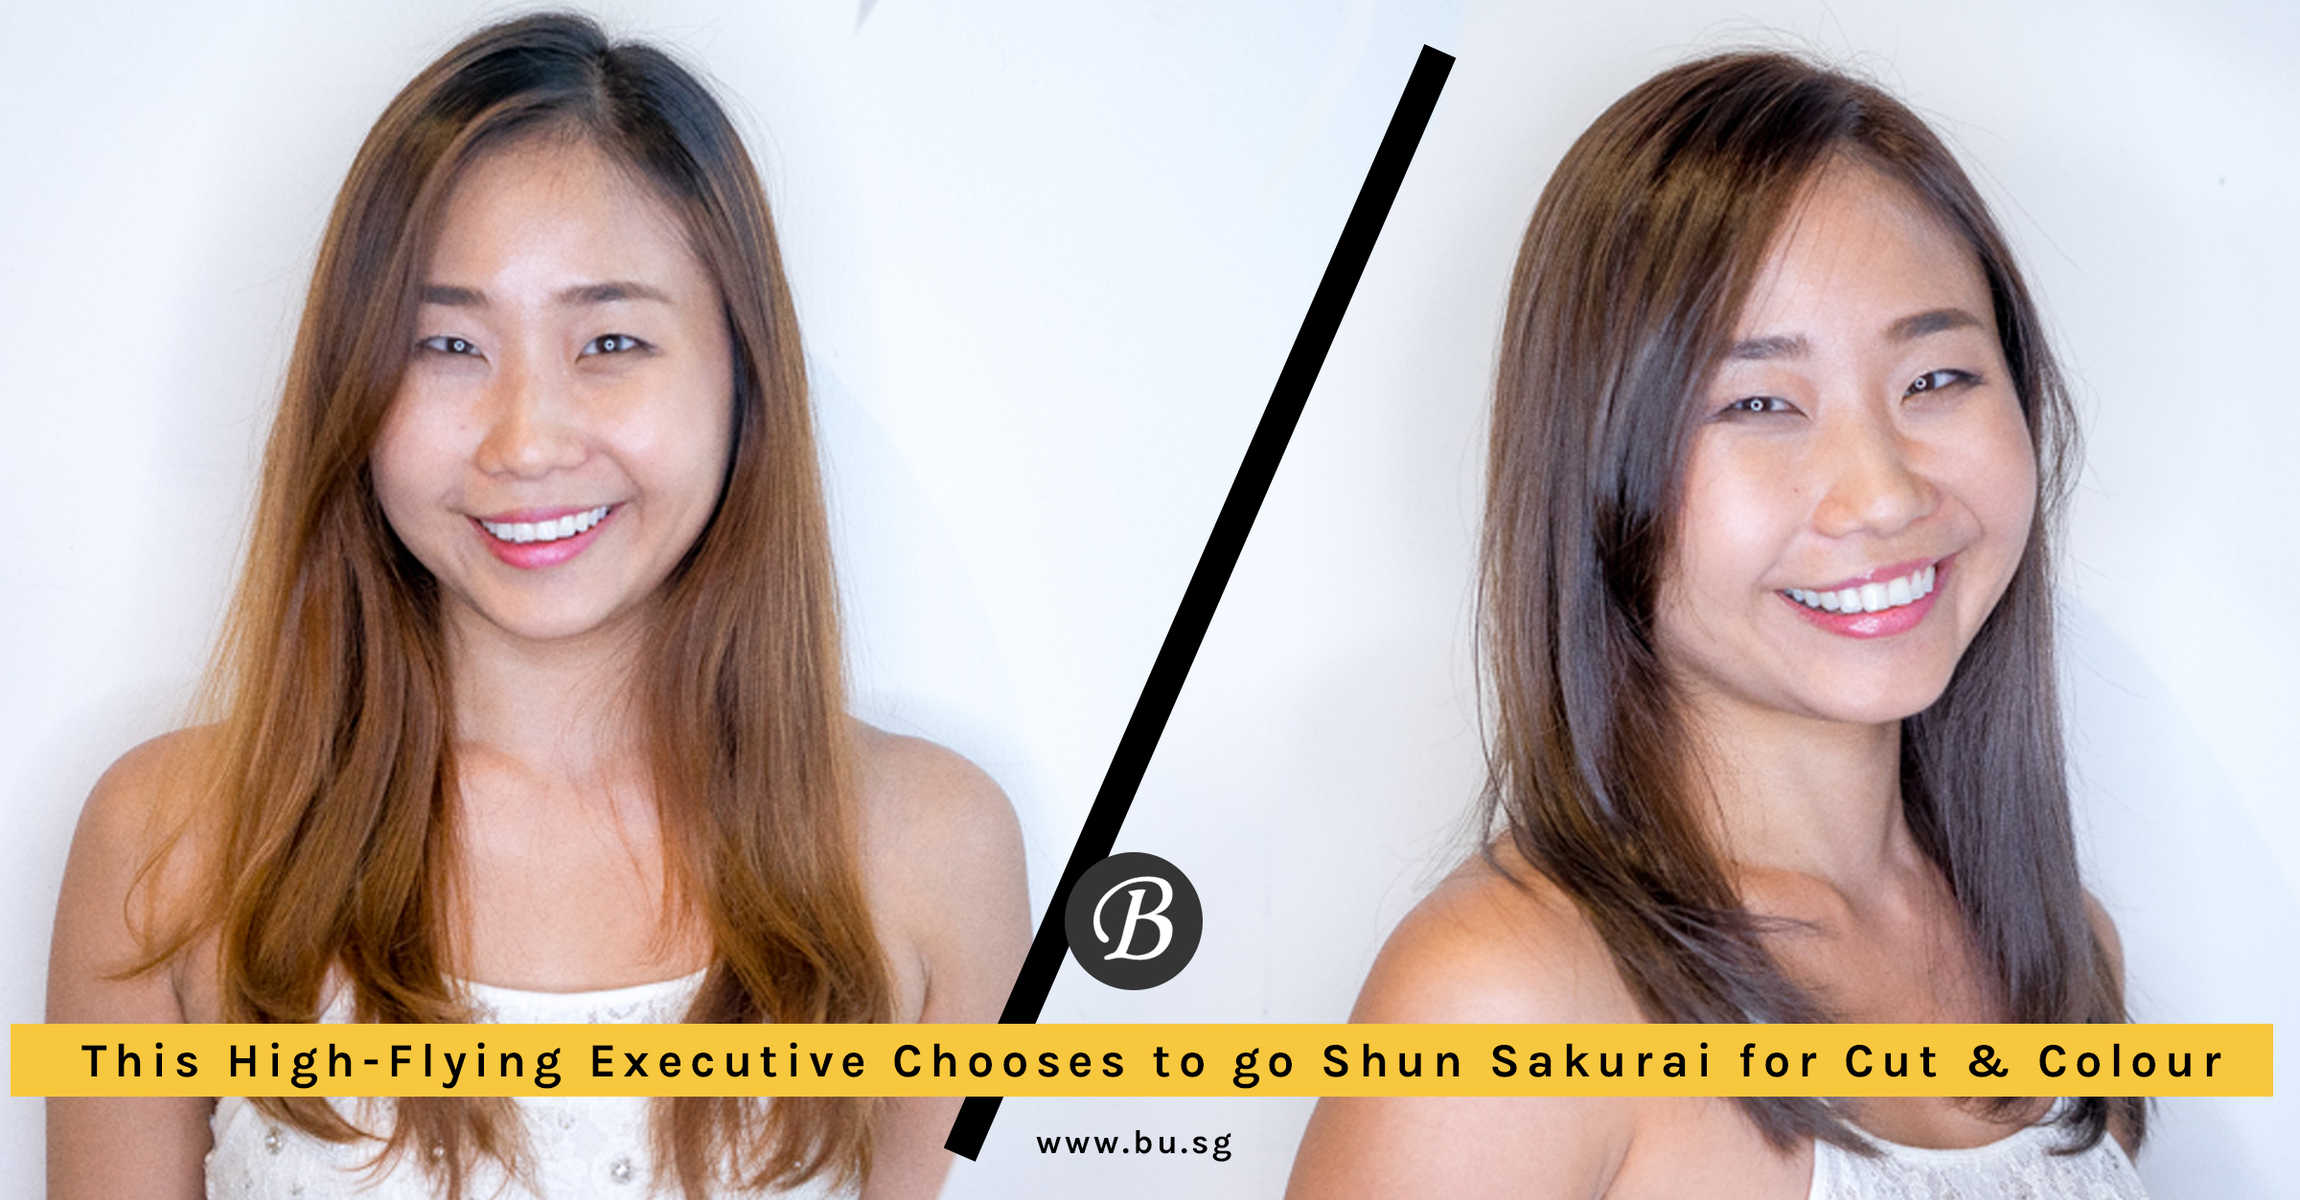 High Flying Executive Agent KM Chooses Shun Sakurai For Her Cut and Colour. Here's Why!